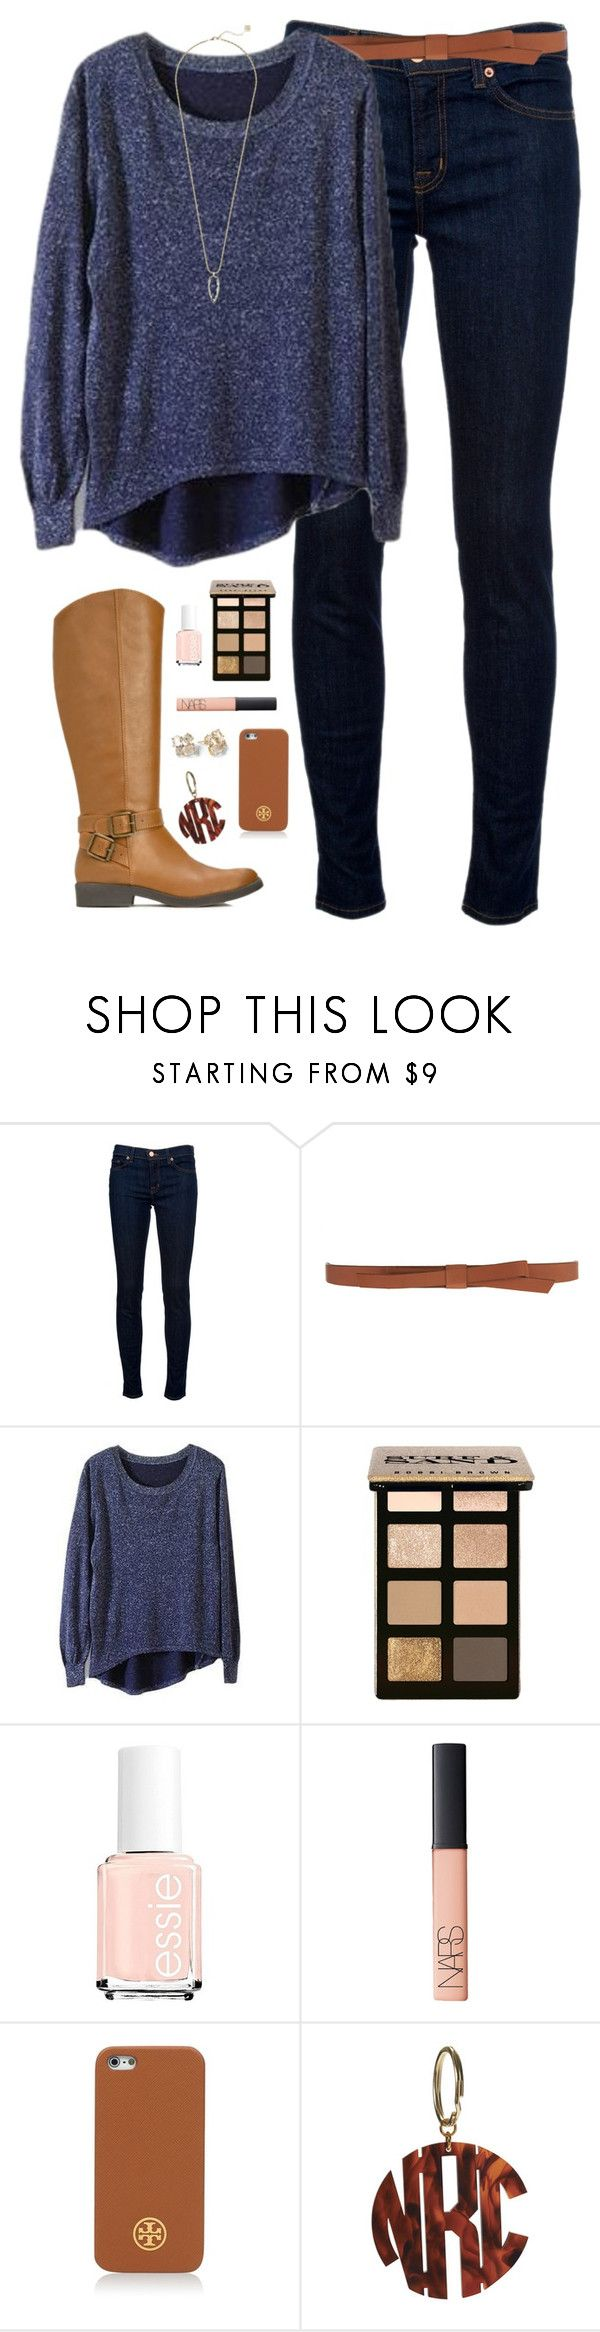 """not so cold winter day"" by classically-preppy ❤ liked on Polyvore featuring J Brand, Ganni, Bobbi Brown Cosmetics, Essie, NARS Cosmetics, Kate Spade, Tory Burch and Kendra Scott"